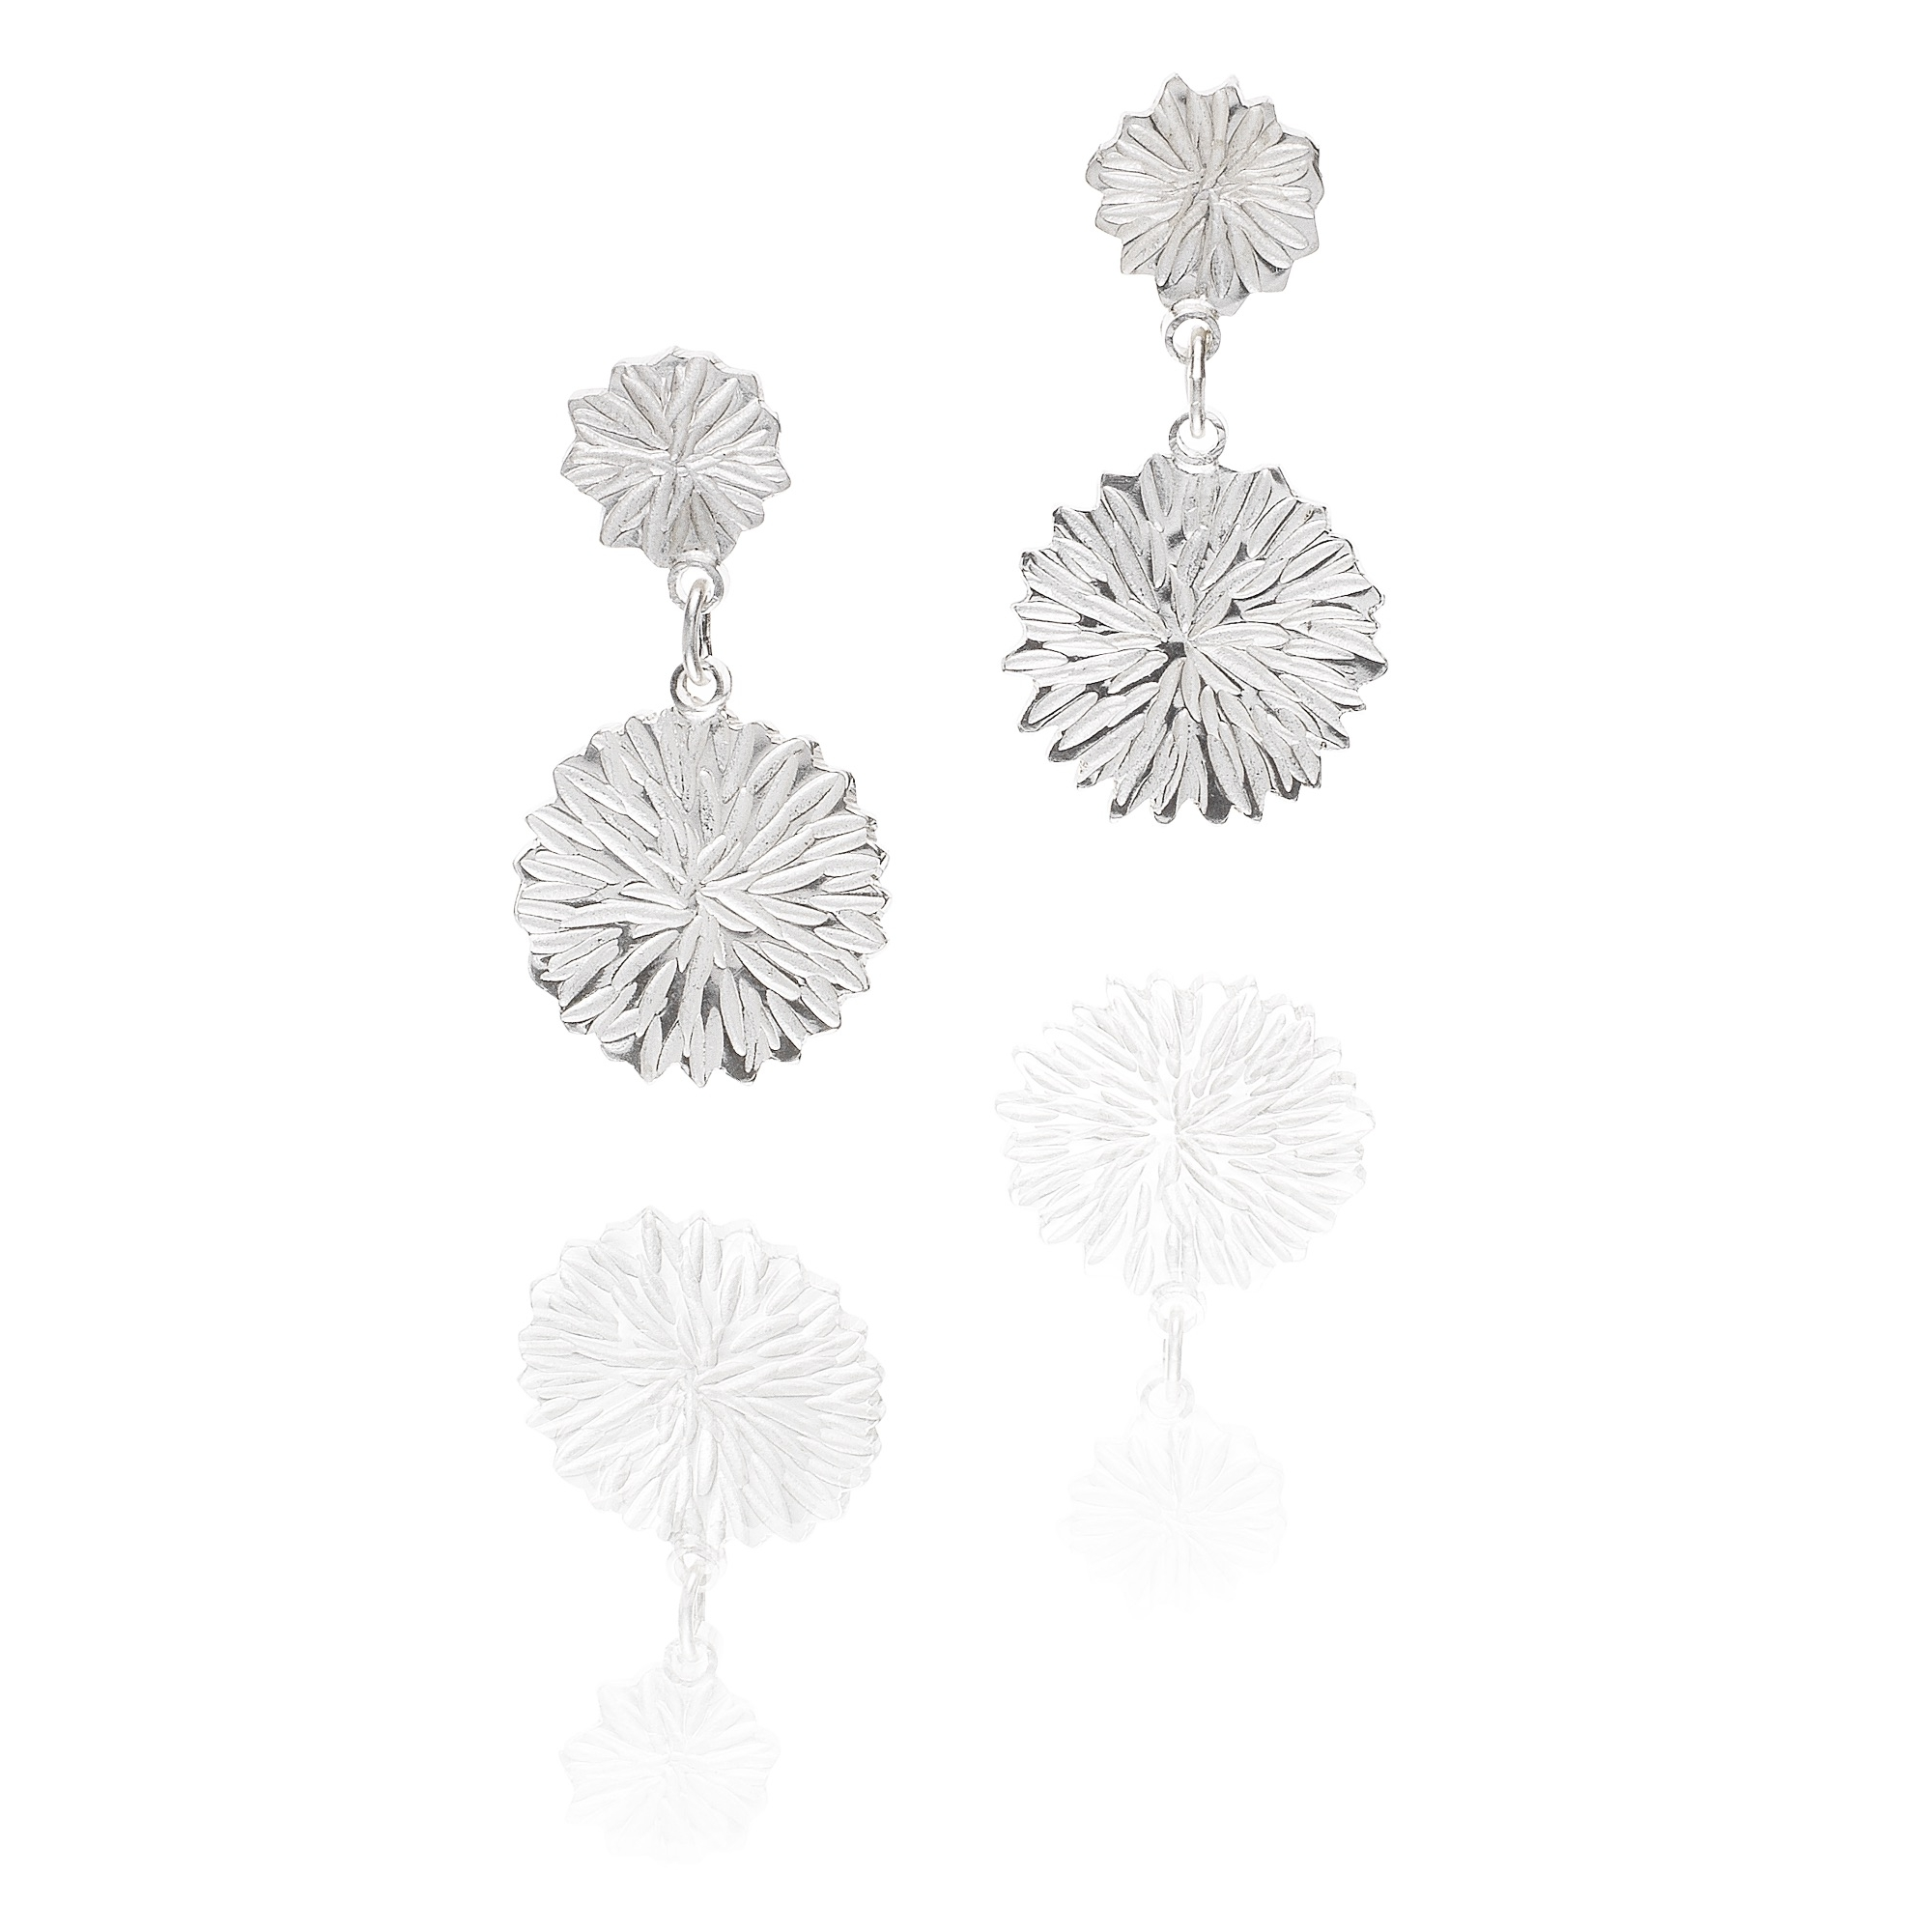 Cathy-newell-price-dahlia-earrings